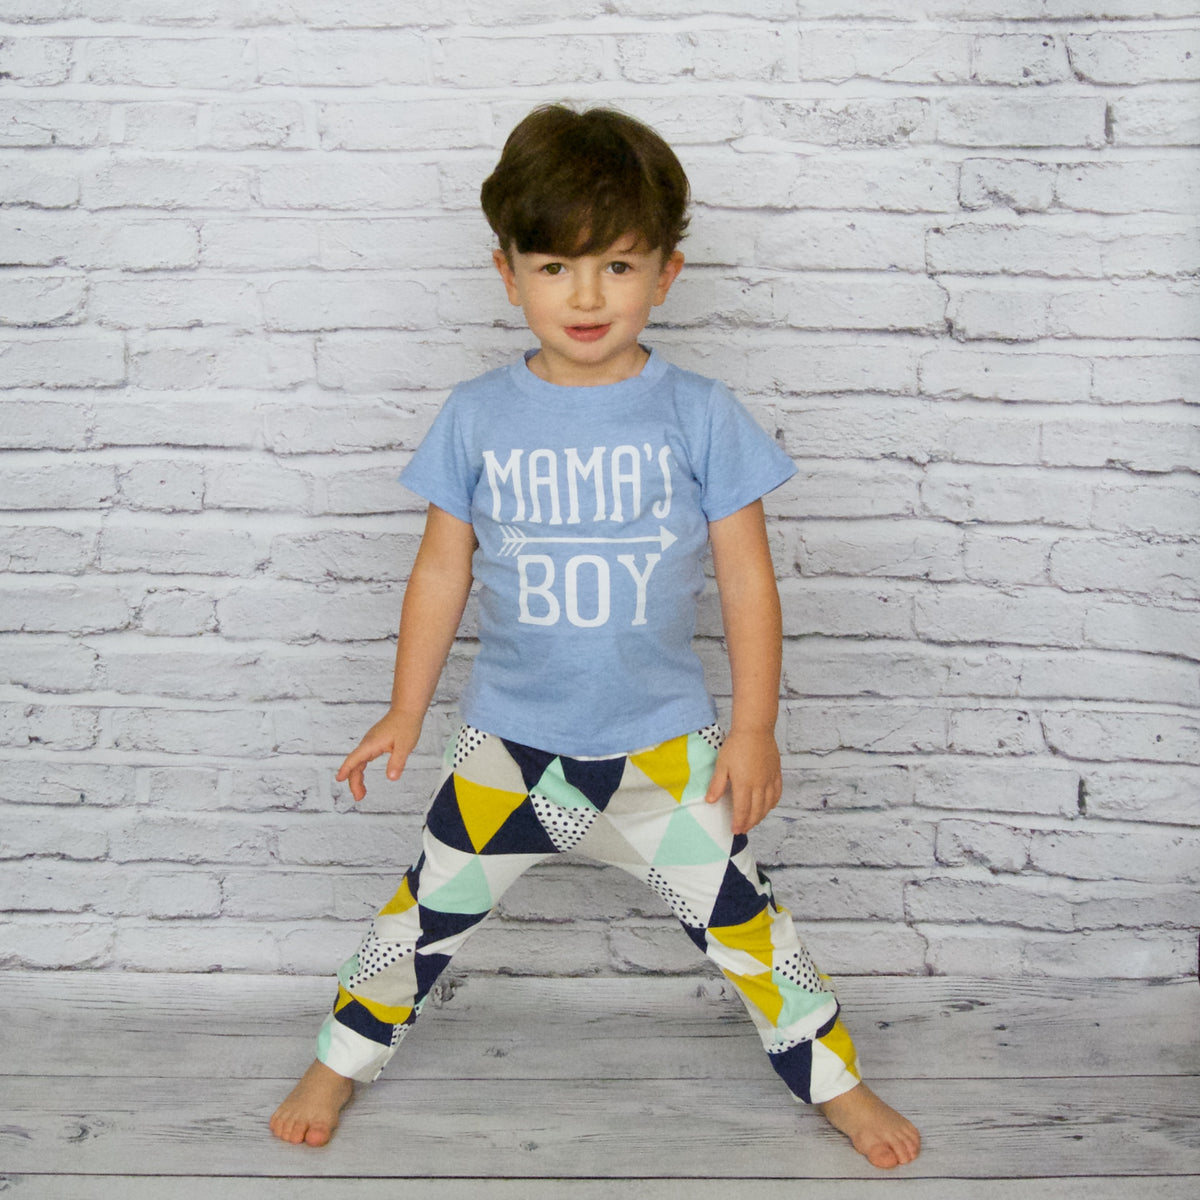 bd4a447e77f4 Baby Boy 2 Piece Outfit Top and Bottom Set - Baby Blue Mama s Boy – Wee  Tribe Kids